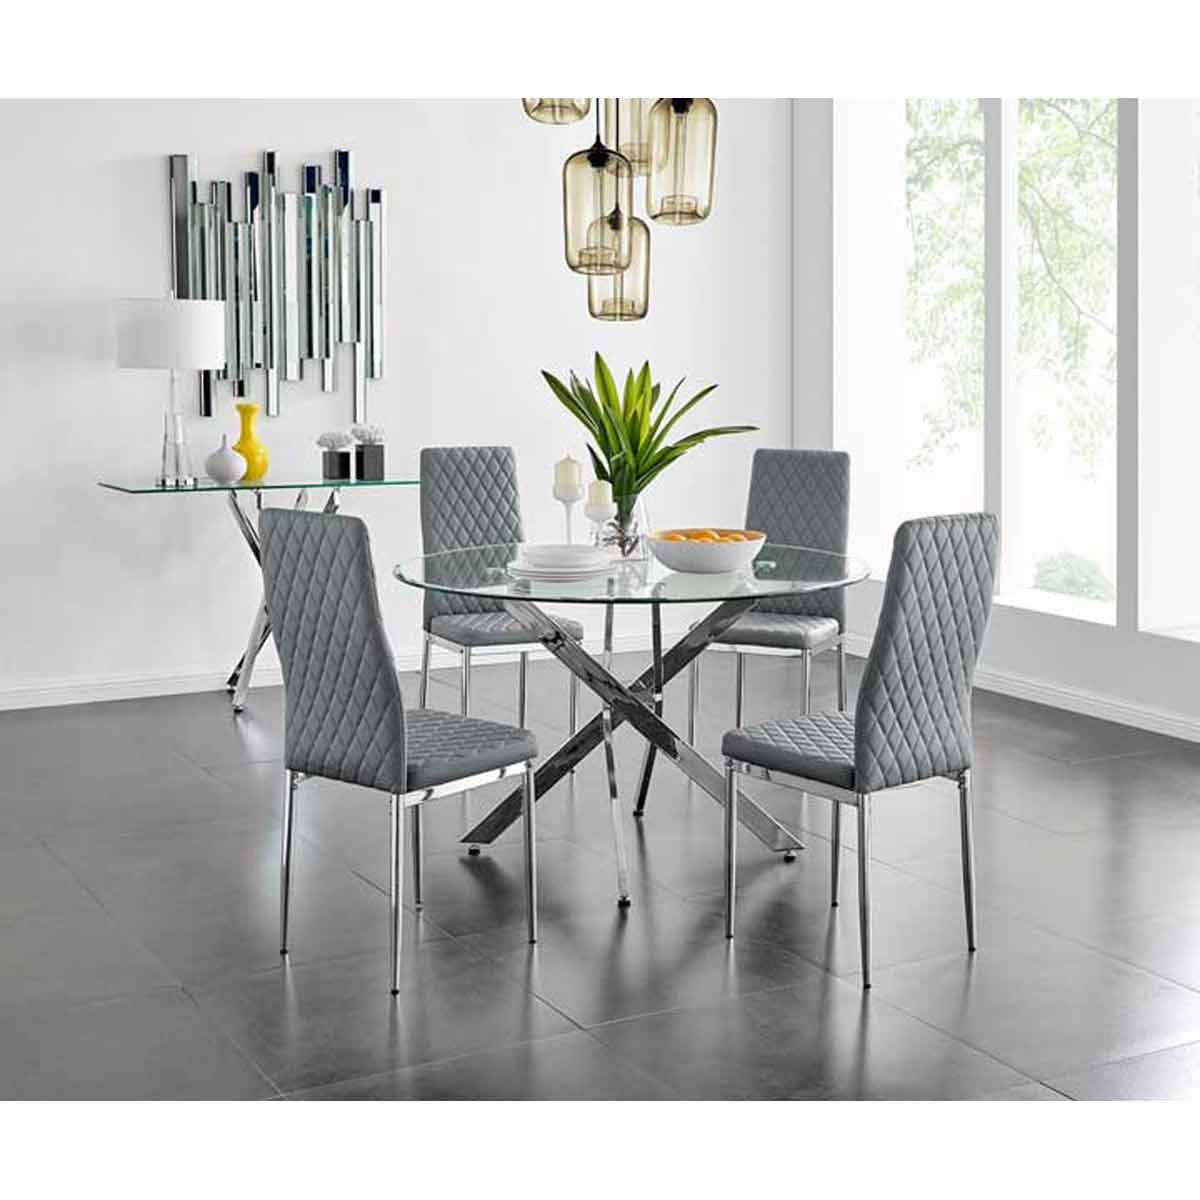 Furniture Box Novara Chrome Metal And Glass Large Round Dining Table And 4 Grey Milan Chairs Set